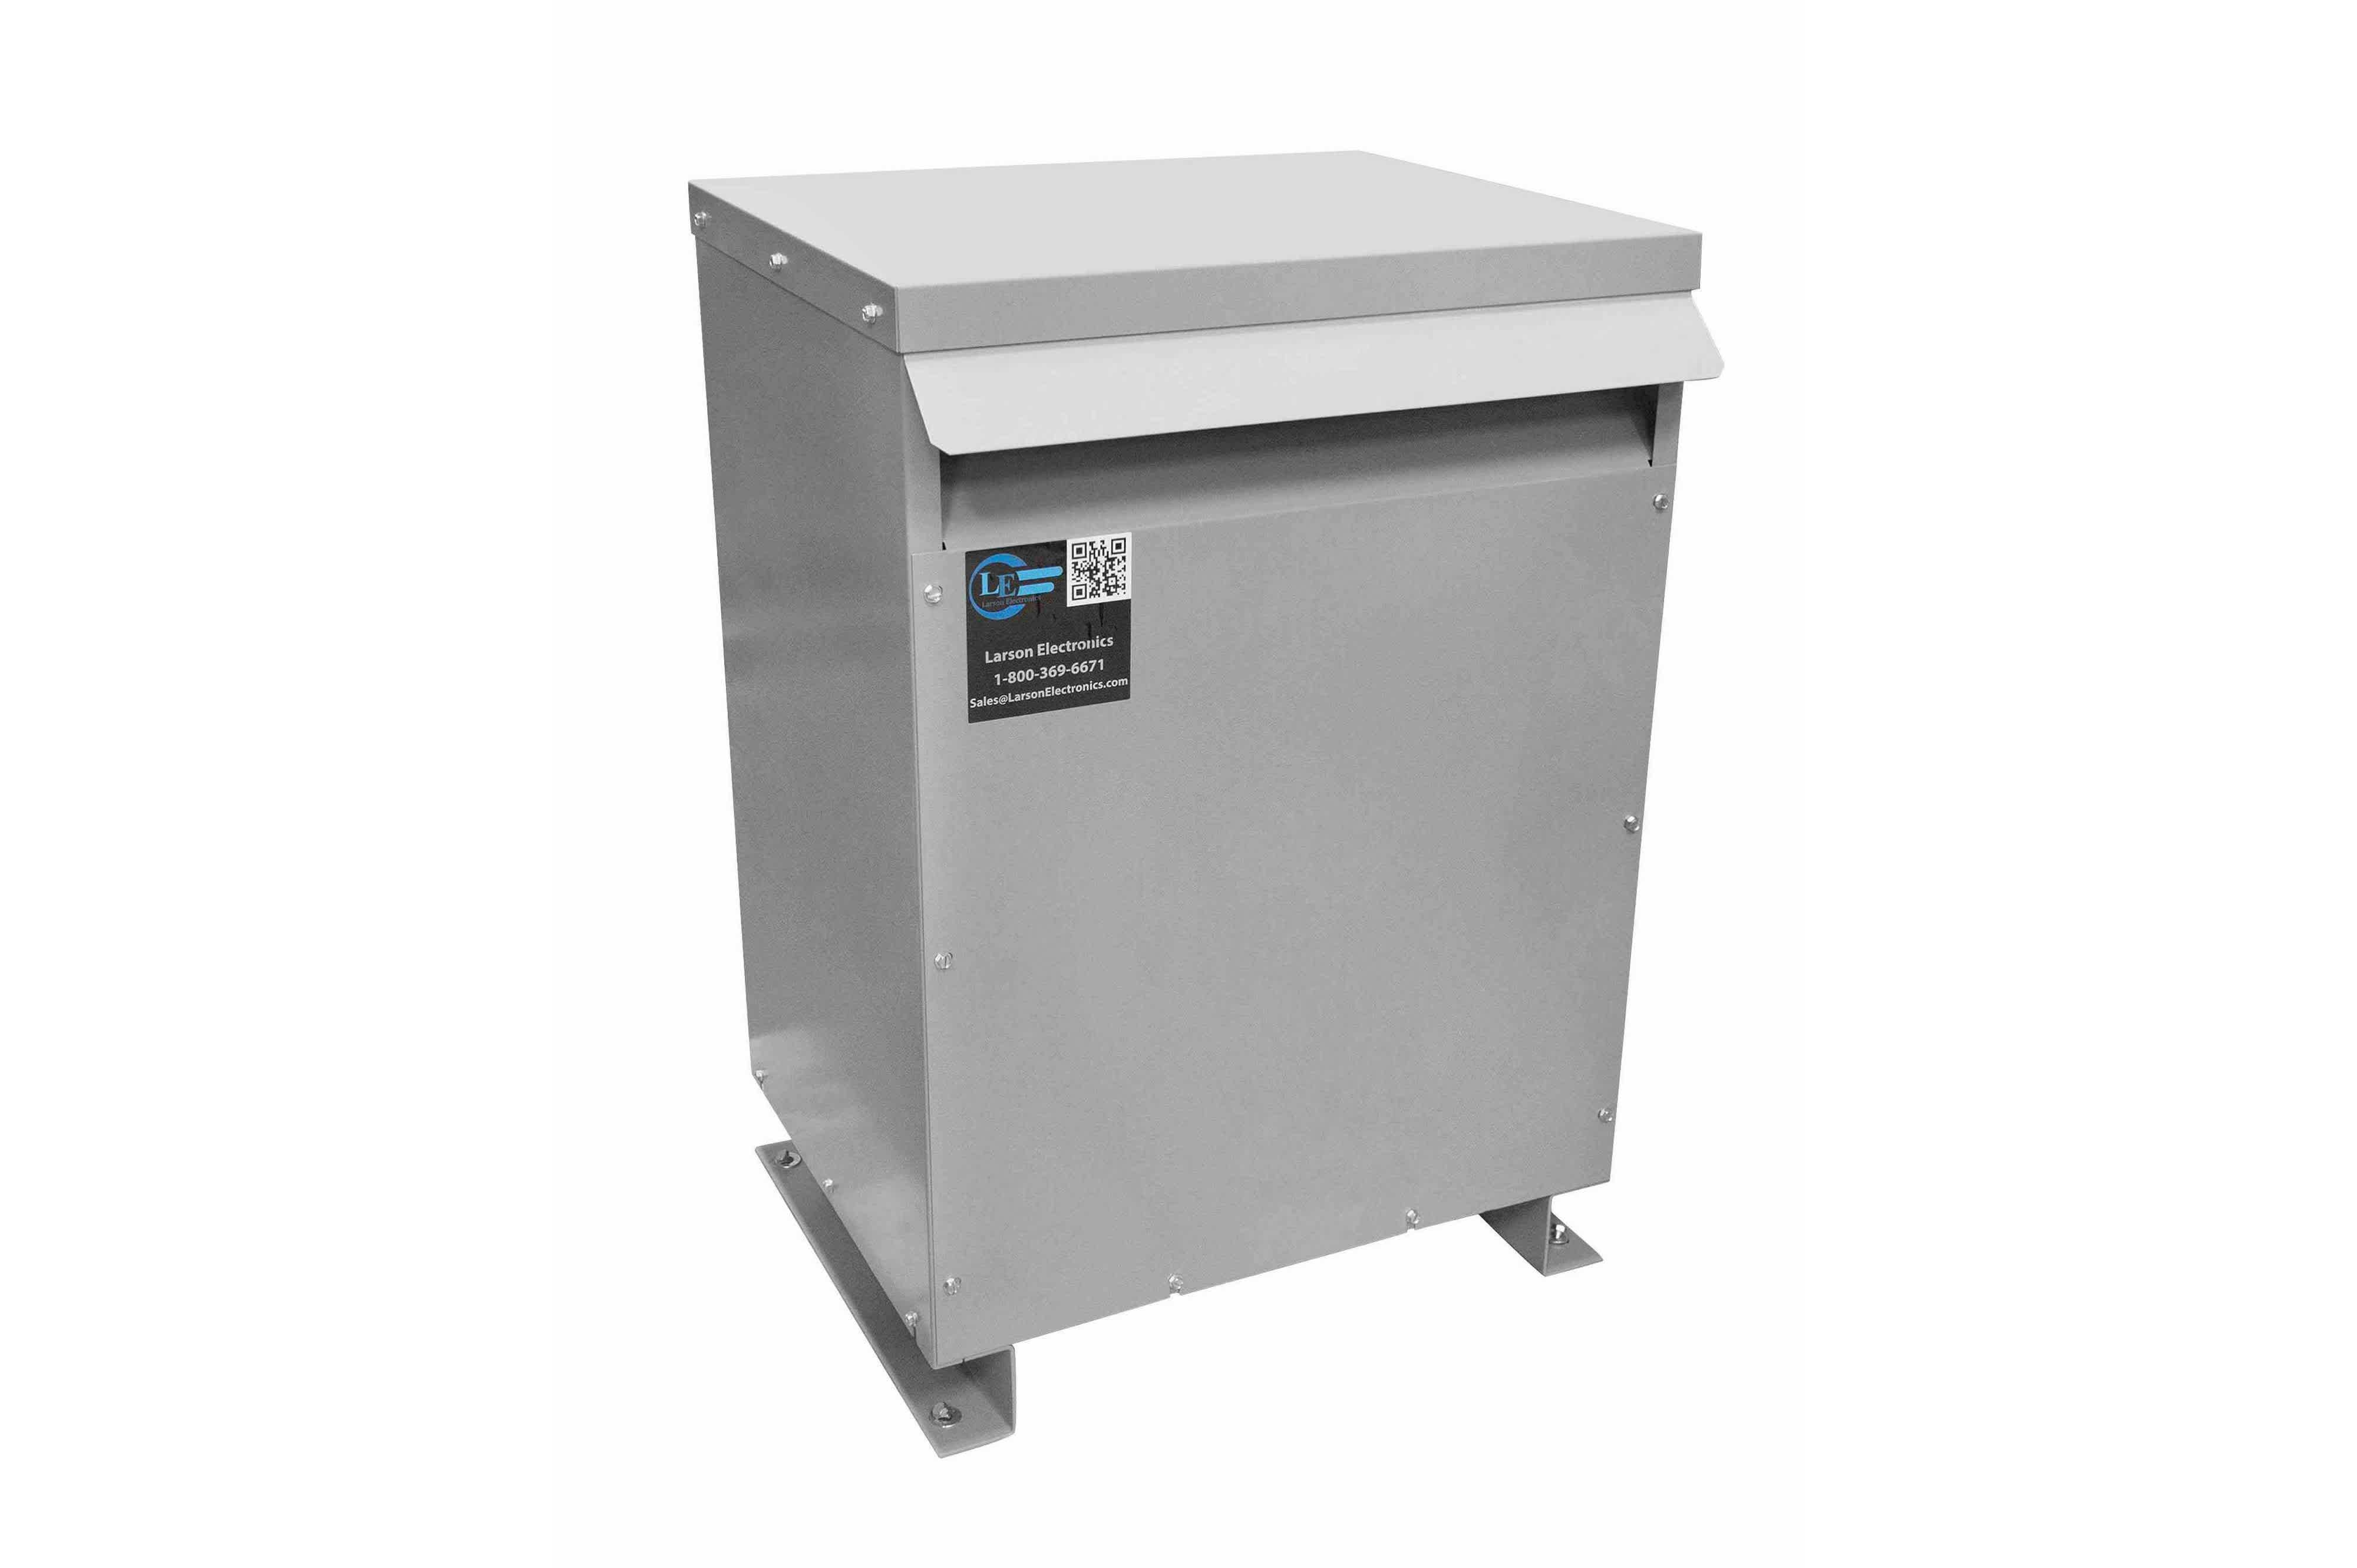 37.5 kVA 3PH DOE Transformer, 415V Delta Primary, 240V/120 Delta Secondary, N3R, Ventilated, 60 Hz